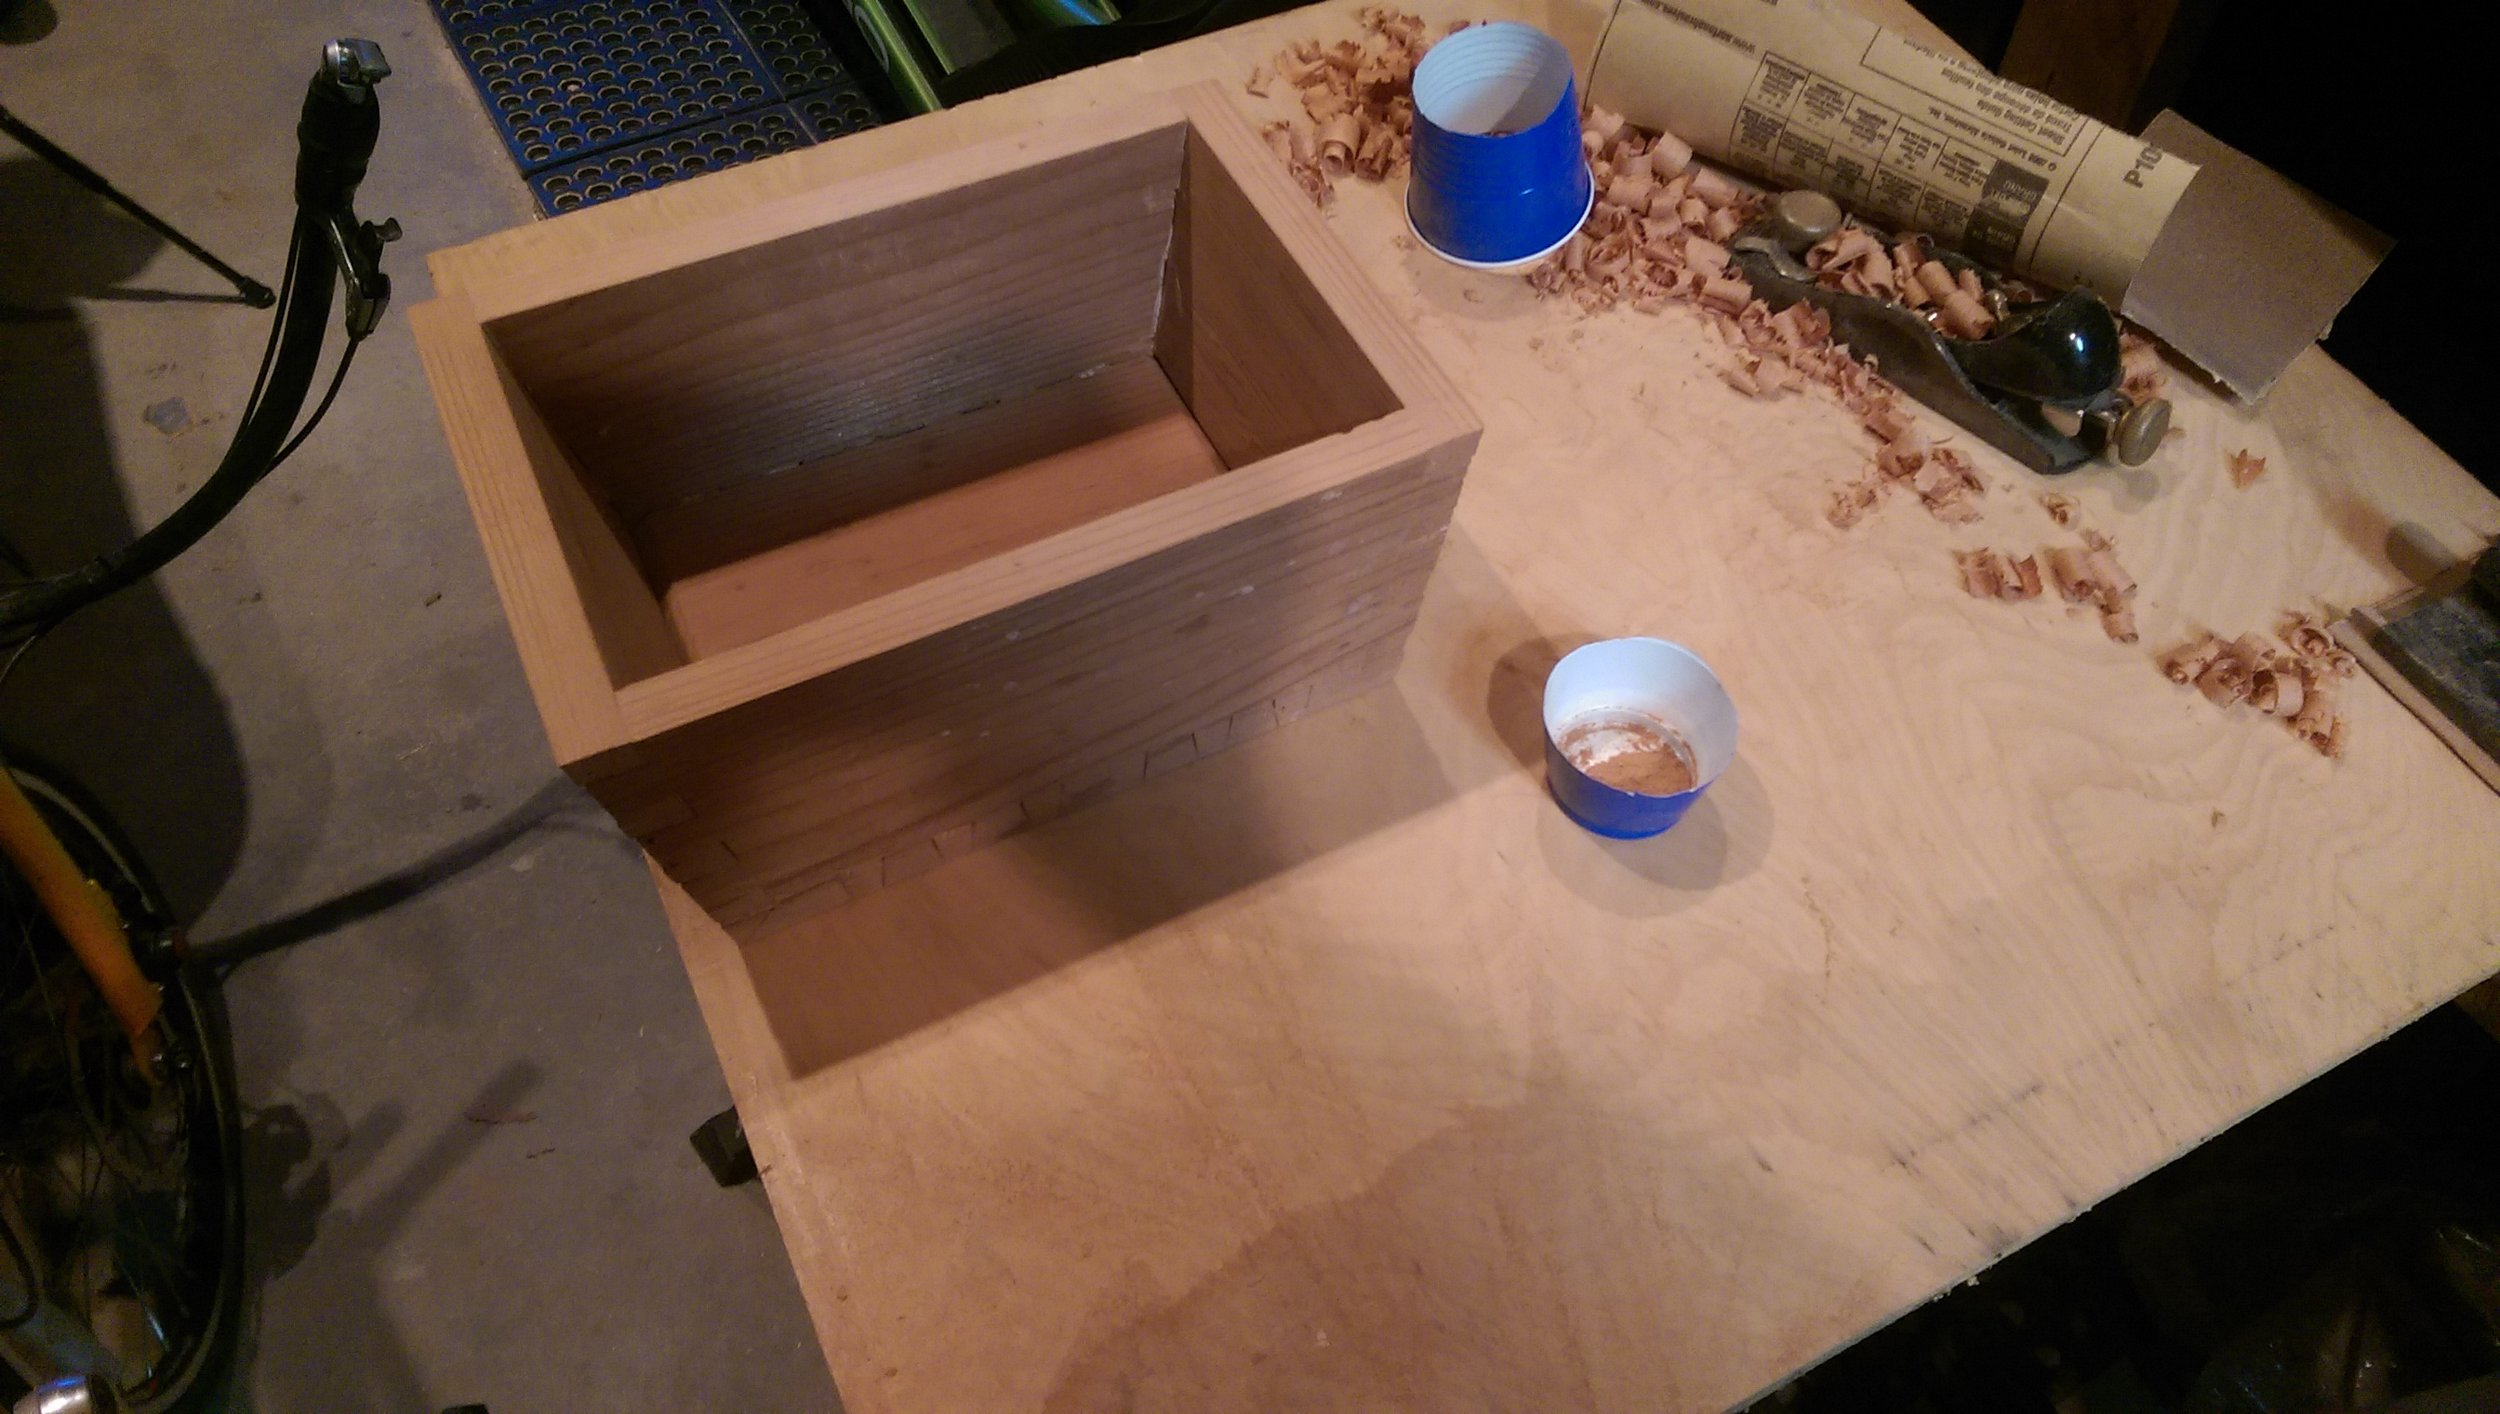 Once the box was glued, I sanded the top flat with a belt-sander.